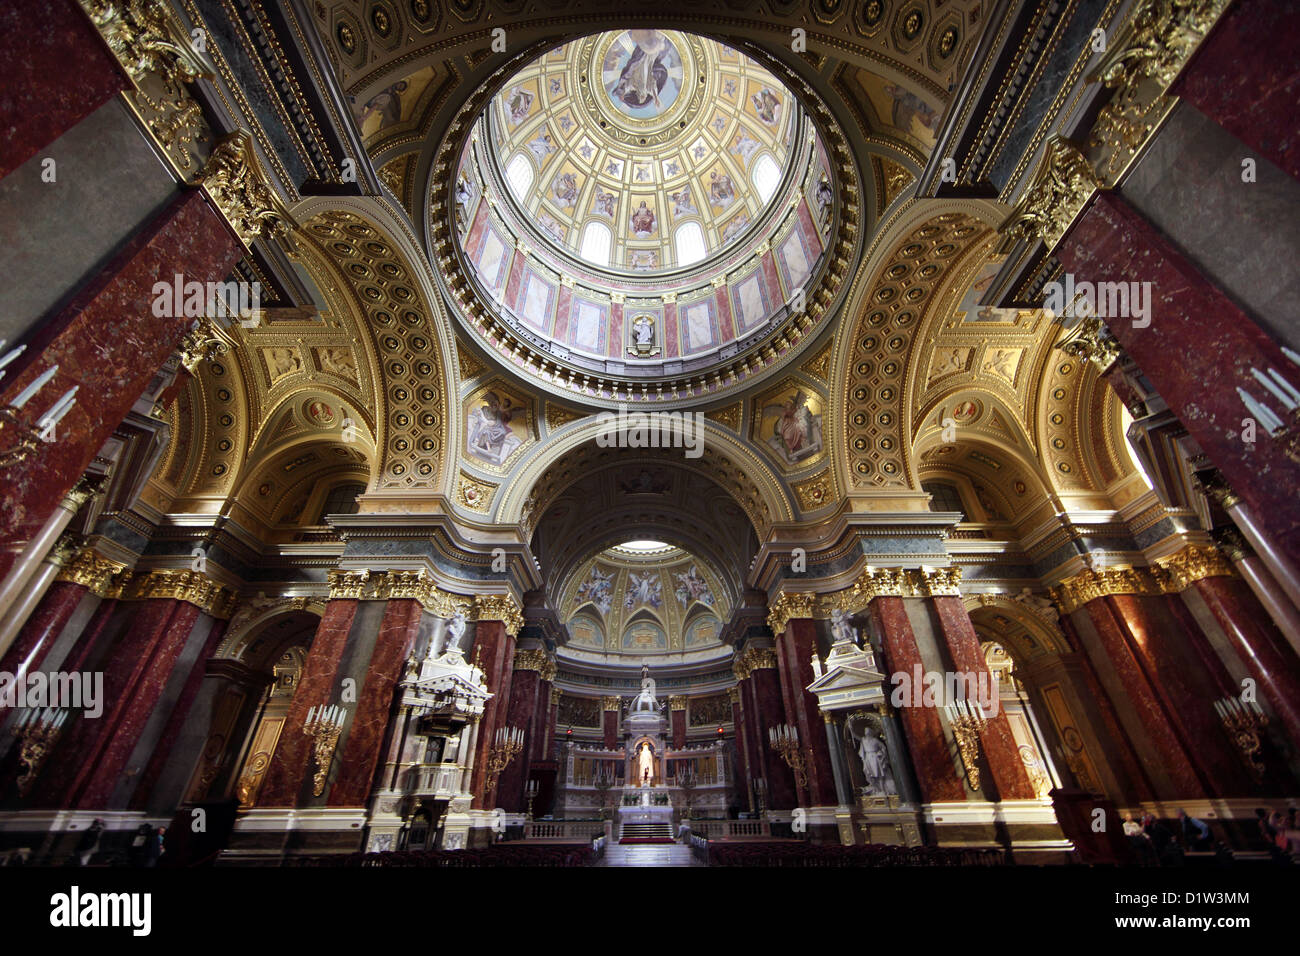 Budapest, Hungary, Interior of St. Stephen's Basilica - Stock Image